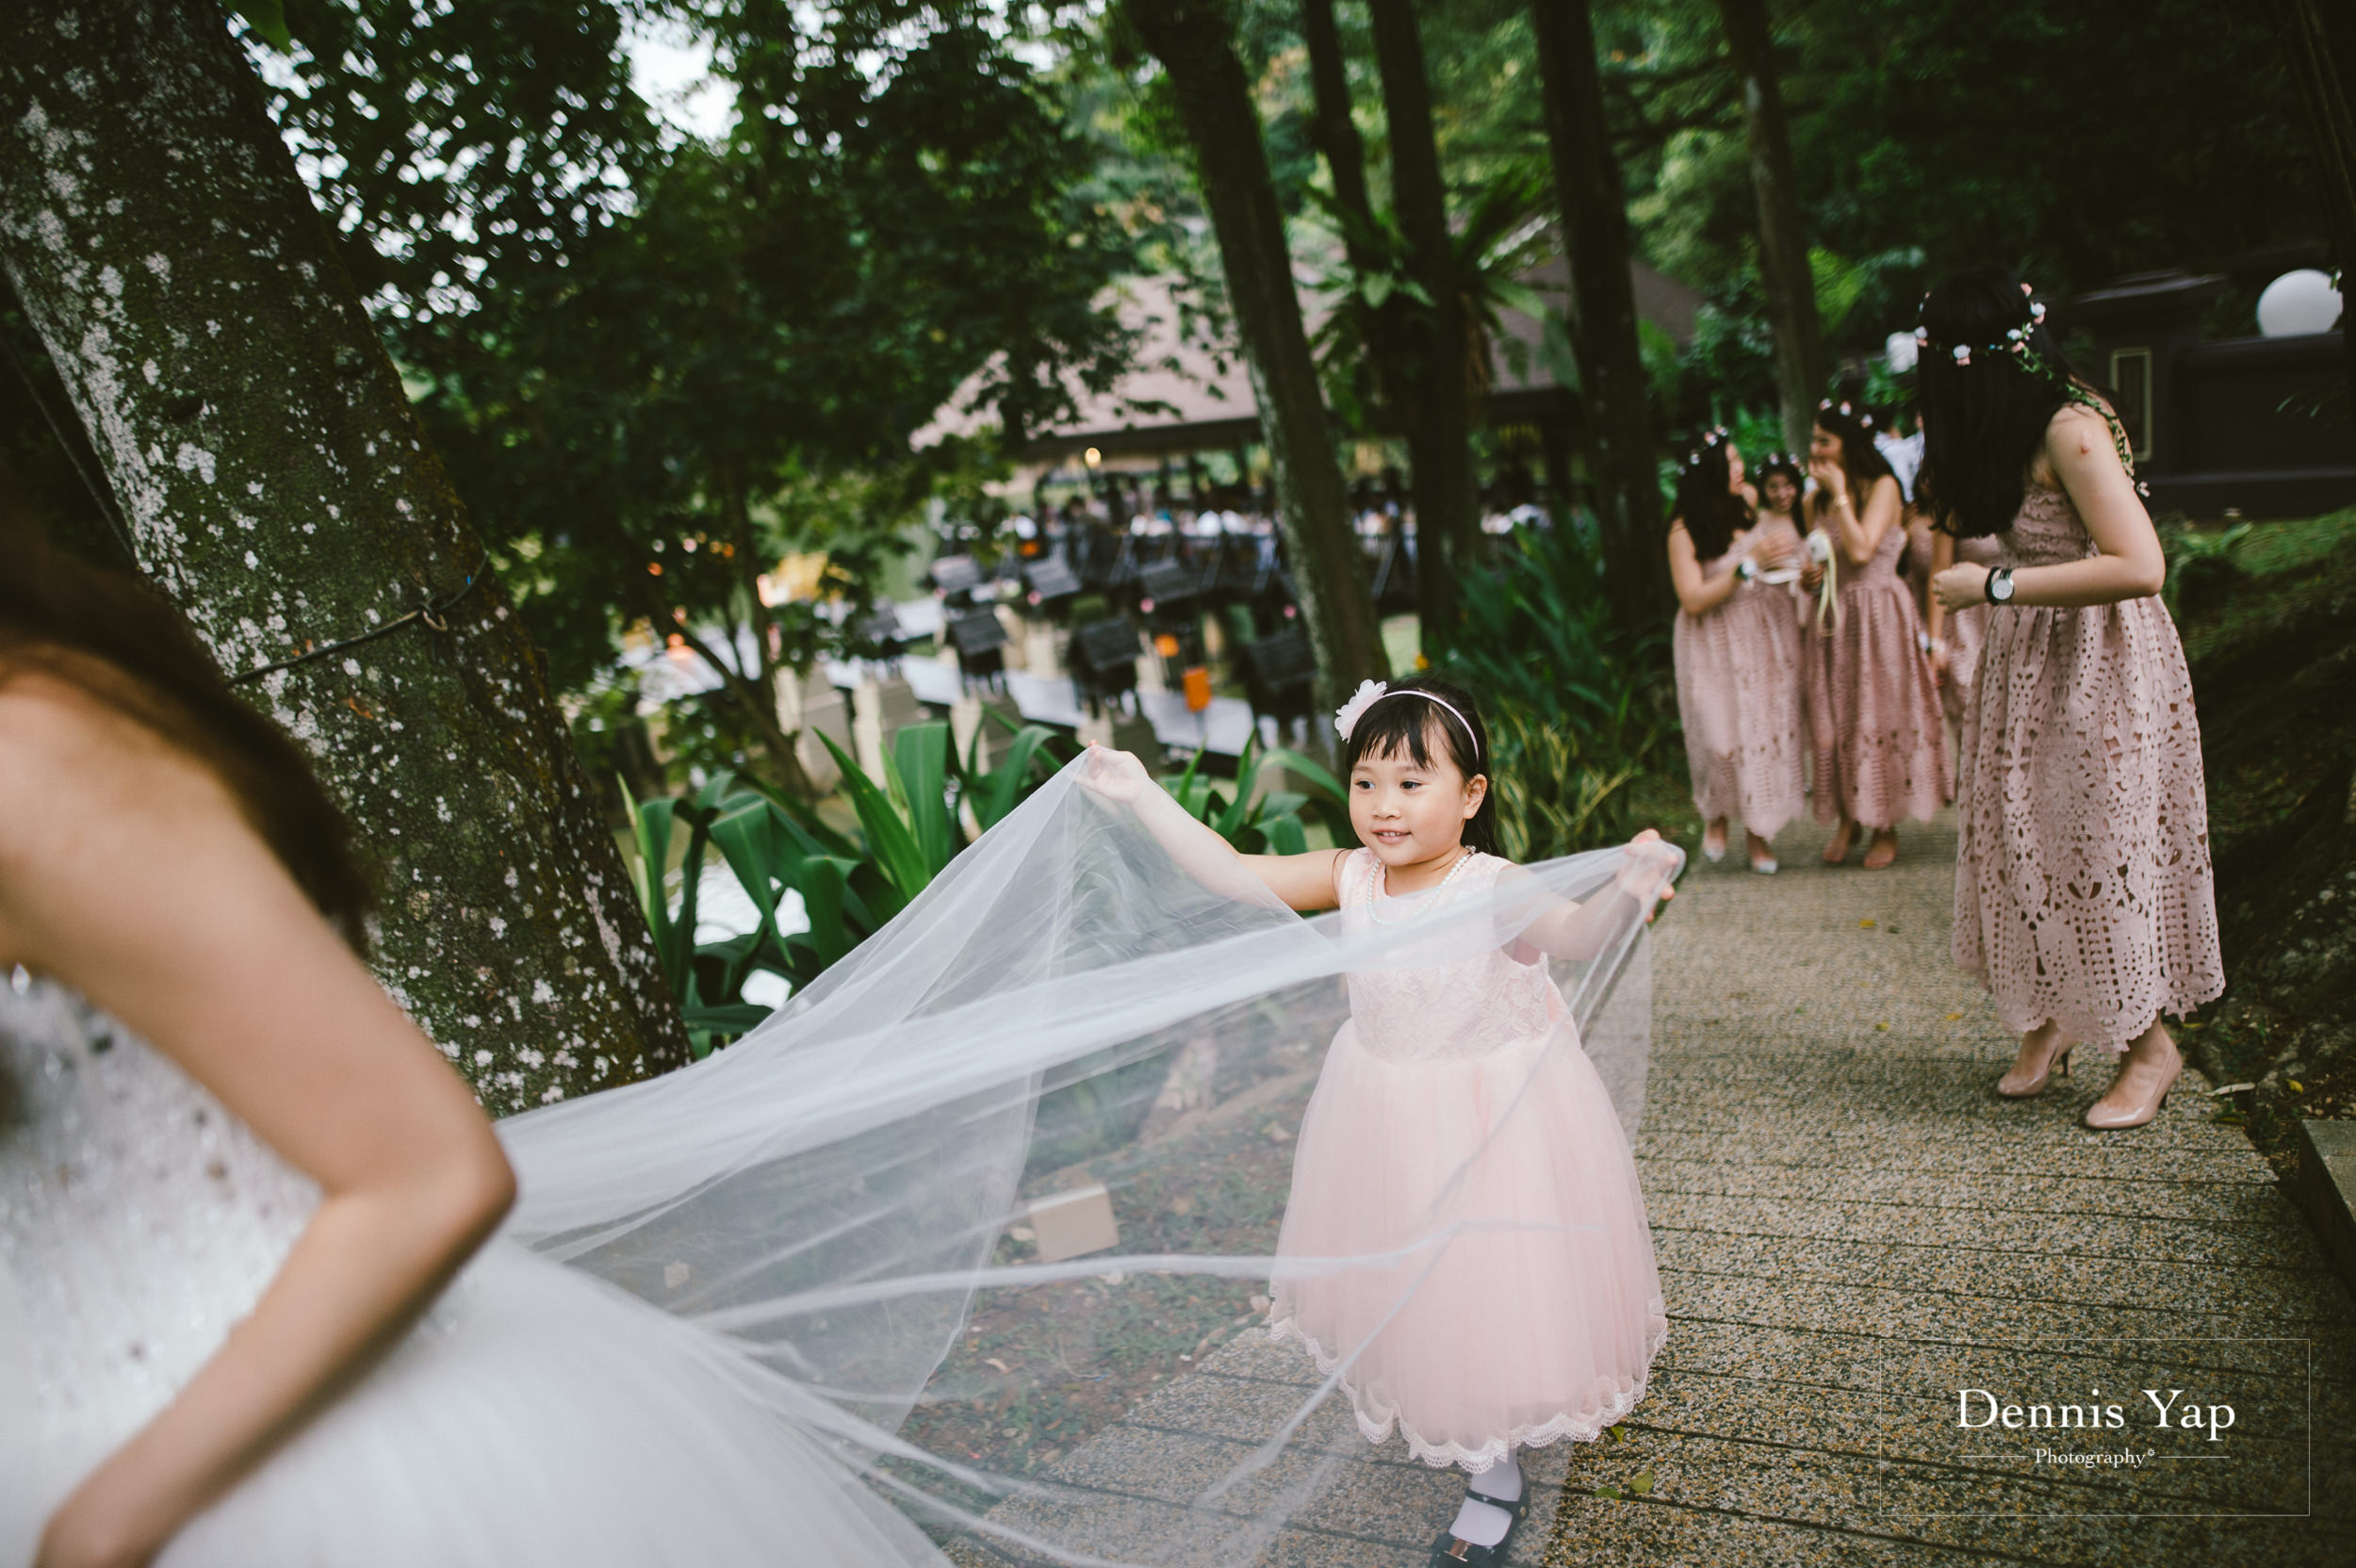 kit weng melissa gita bayu garden wedding dennis yap photography-23.jpg